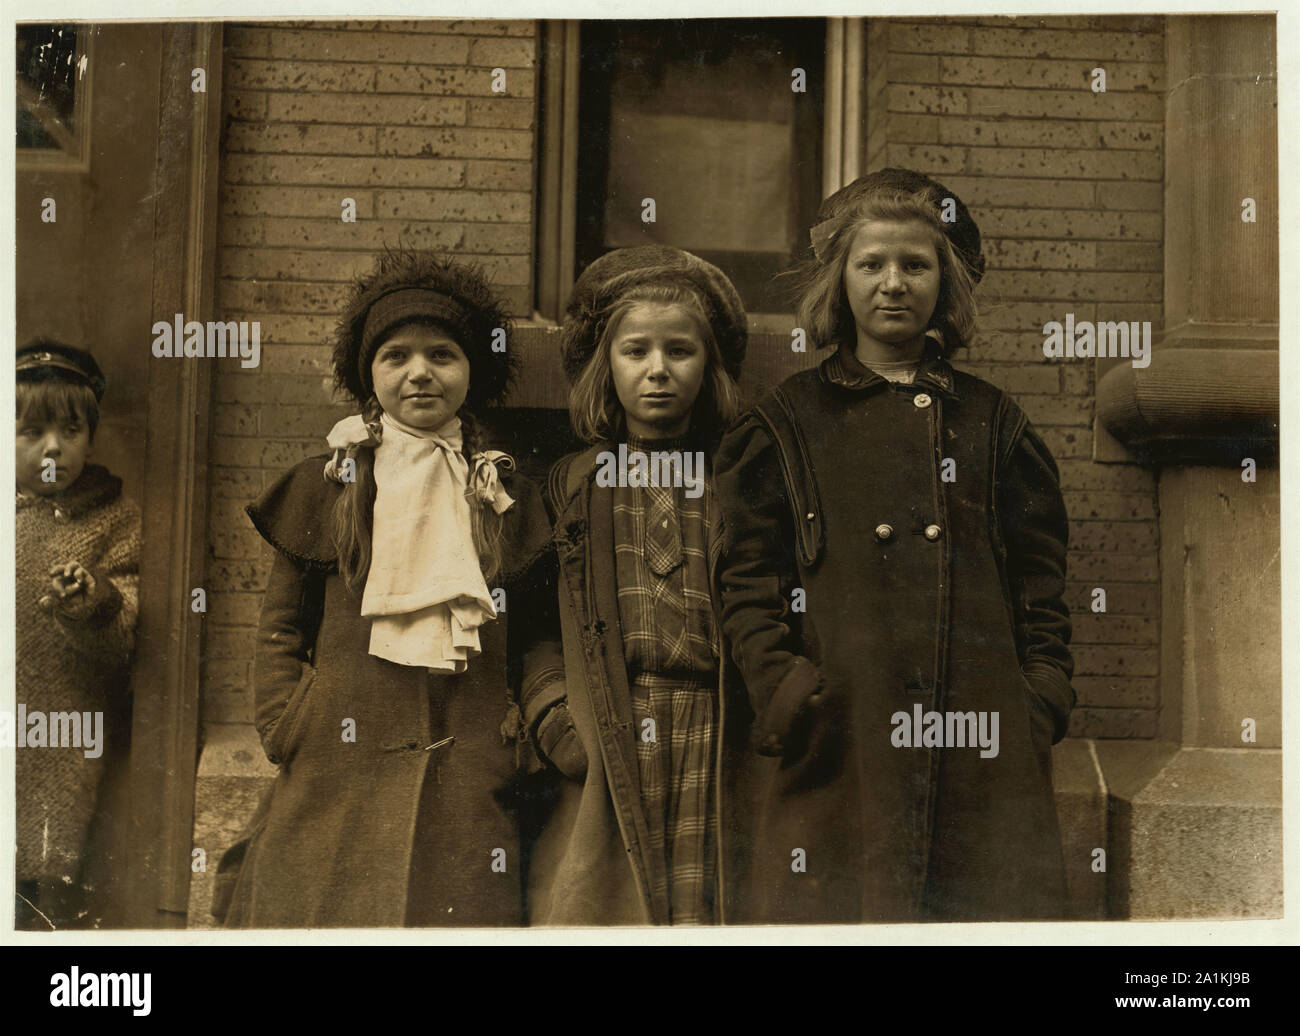 Newsgirls waiting for papers. Largest girl, Alice Goldman has been selling for 4 years. Newsdealer says she uses viler language than the newsboys do. Besie Goldman and Bessie Brownstein are 9 years old and have been selling about one year. All sell until 7:00 or 7:30 P.M. daily. Stock Photo